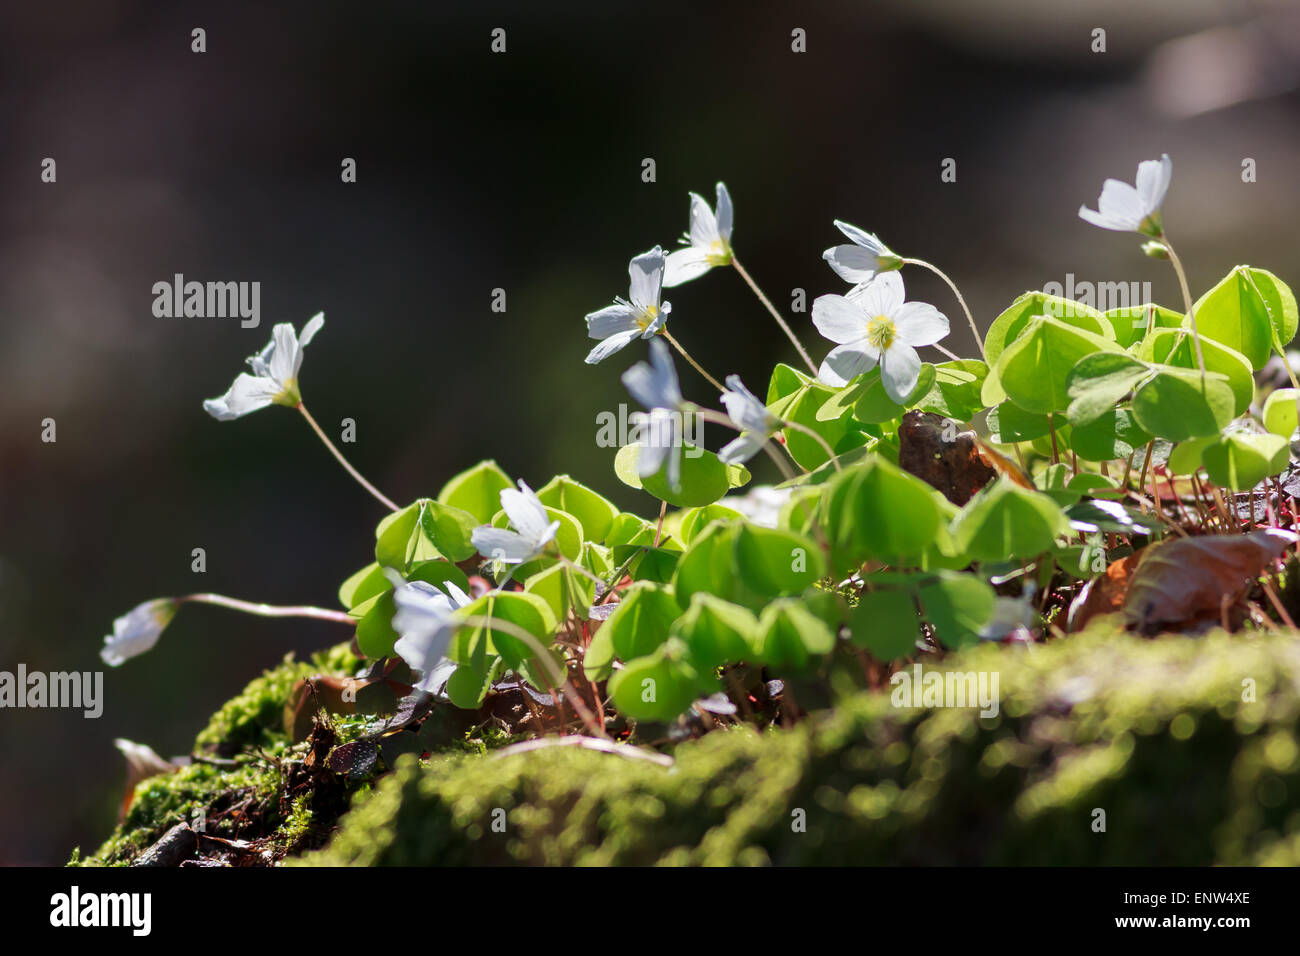 Wood Sorrel or Common Wood Sorrel with a blurred background - Stock Image